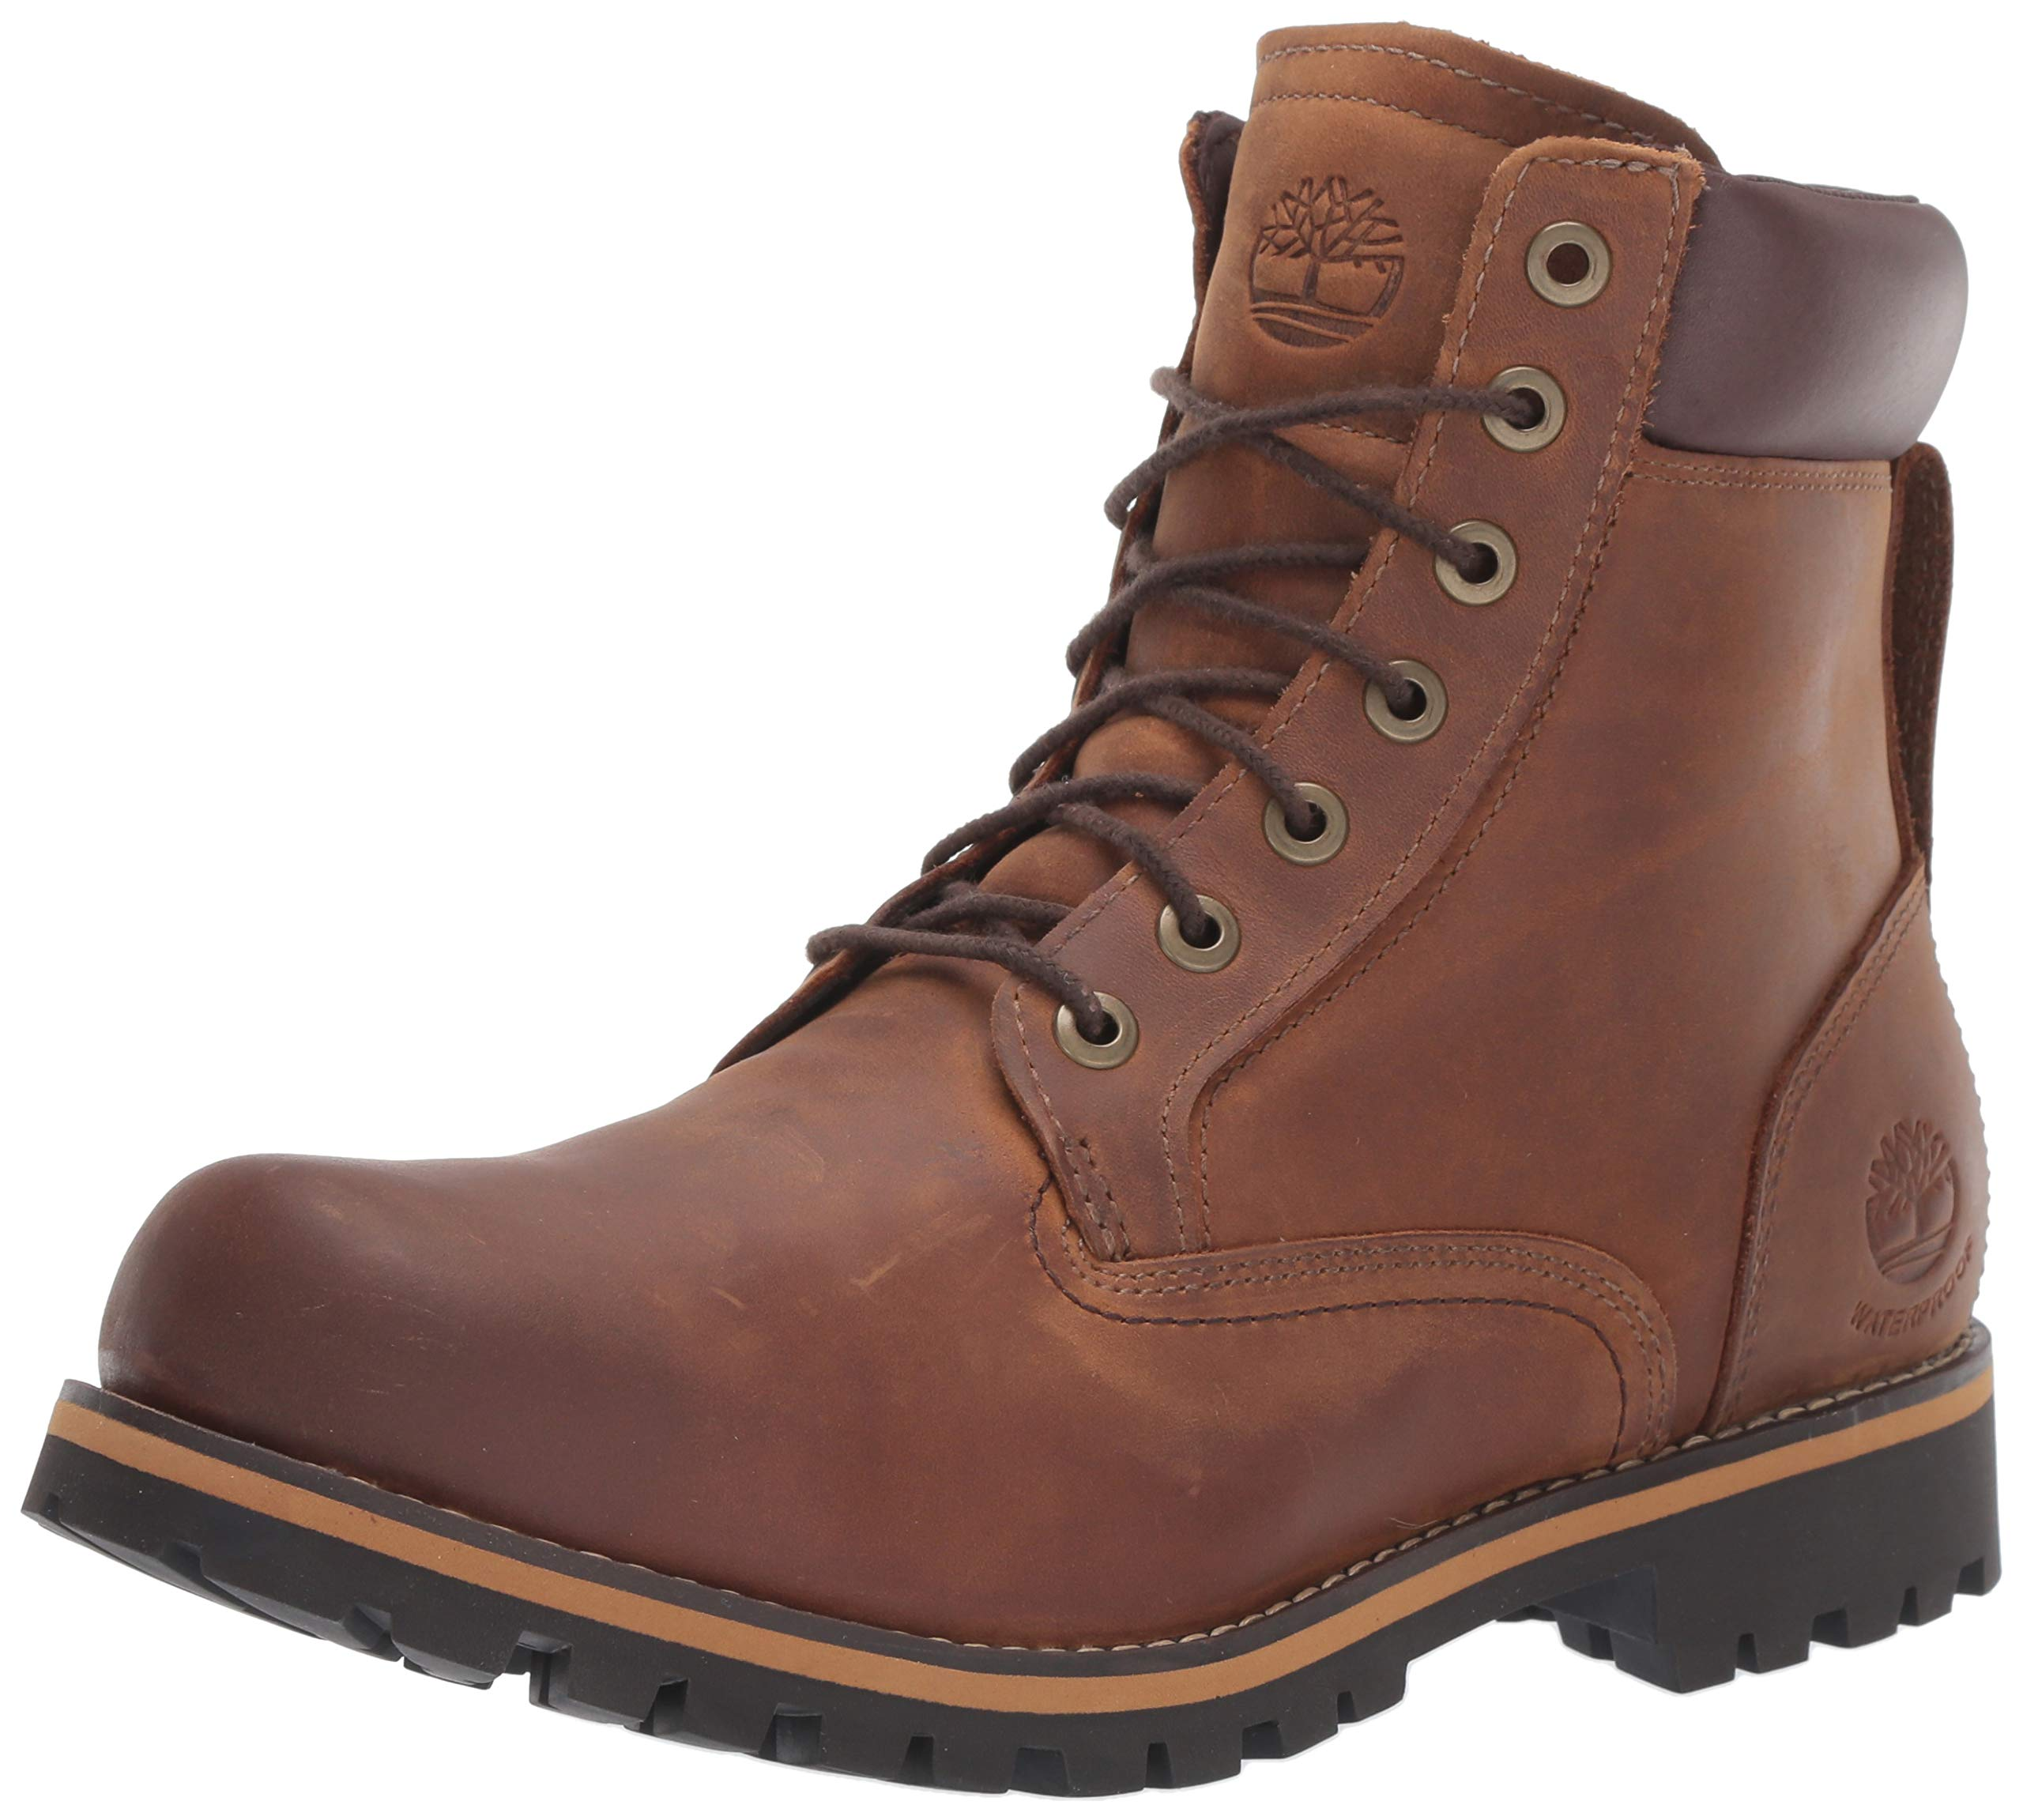 Timberland Men's Earthkeepers Rugged Boot, Medium brown full grain, 7 W US